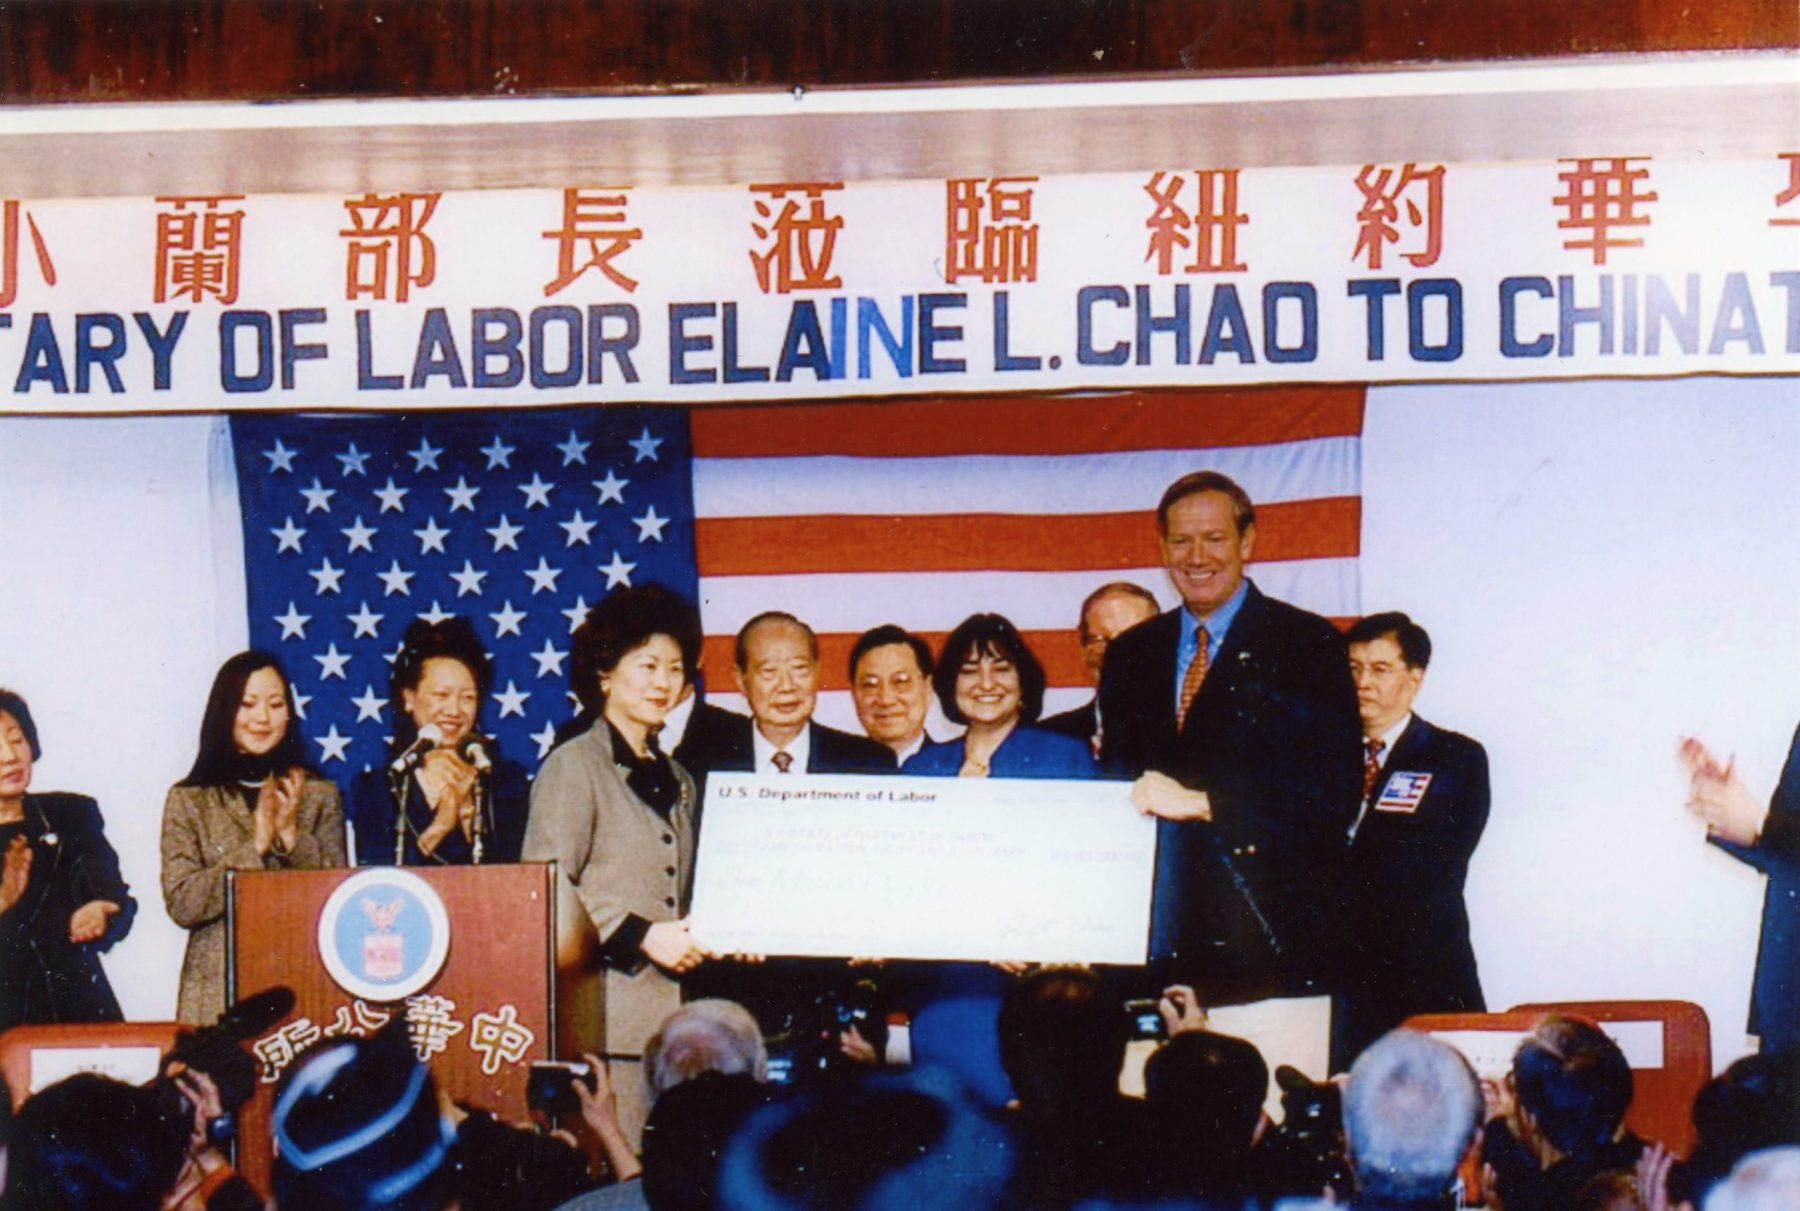 Secretary of Labor Elaine Chao presenting a check for $1,000,000 to Chinatown to help residents recover from the economic devastation of the attacks of September 11, 2001 with New York Governor George Pataki.